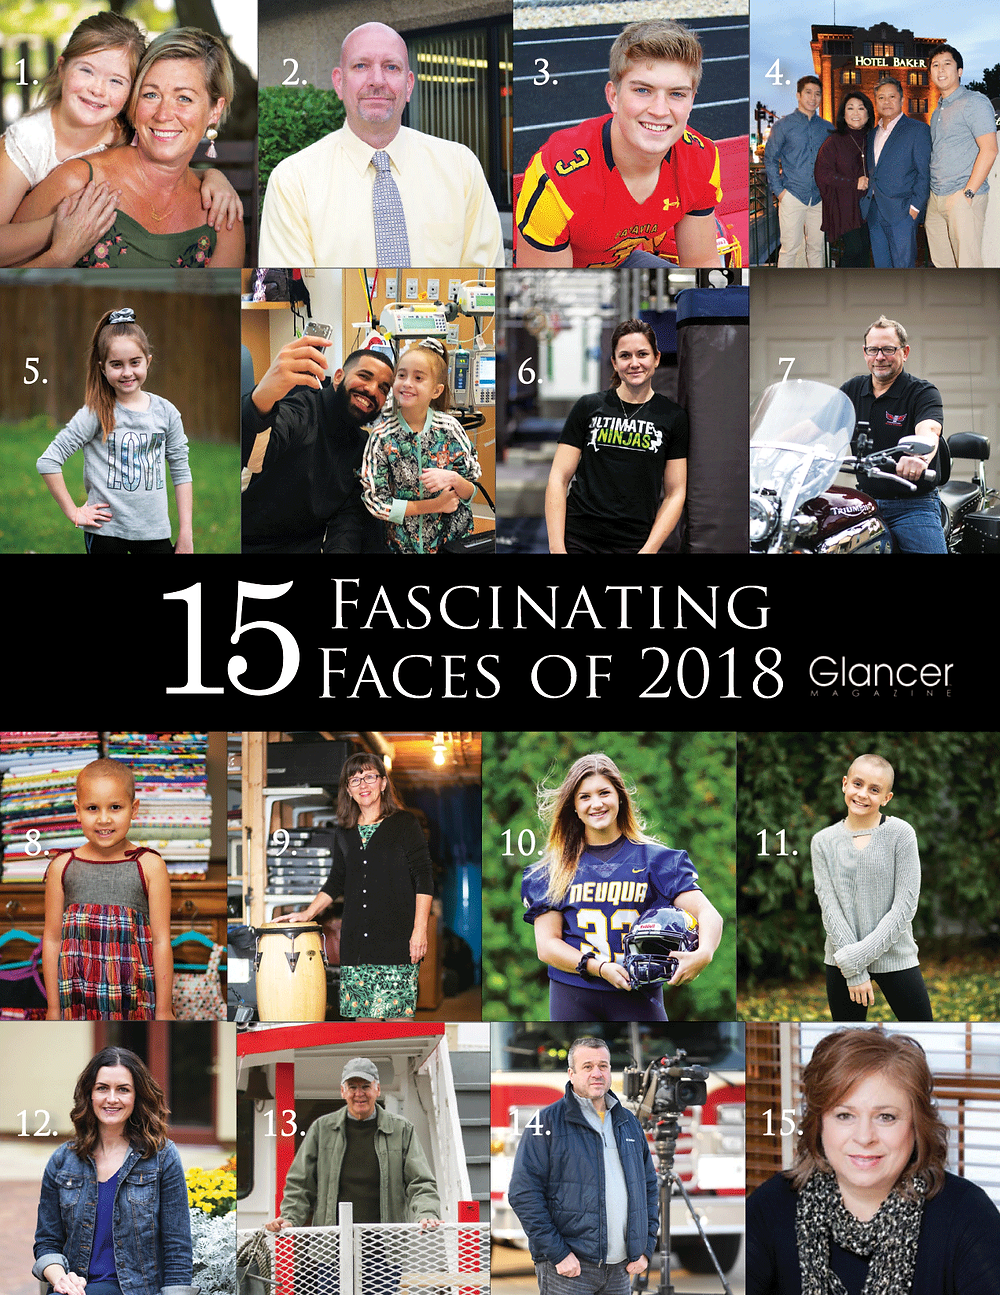 15 Fascinating Faces of 2018, Glancer Magazine